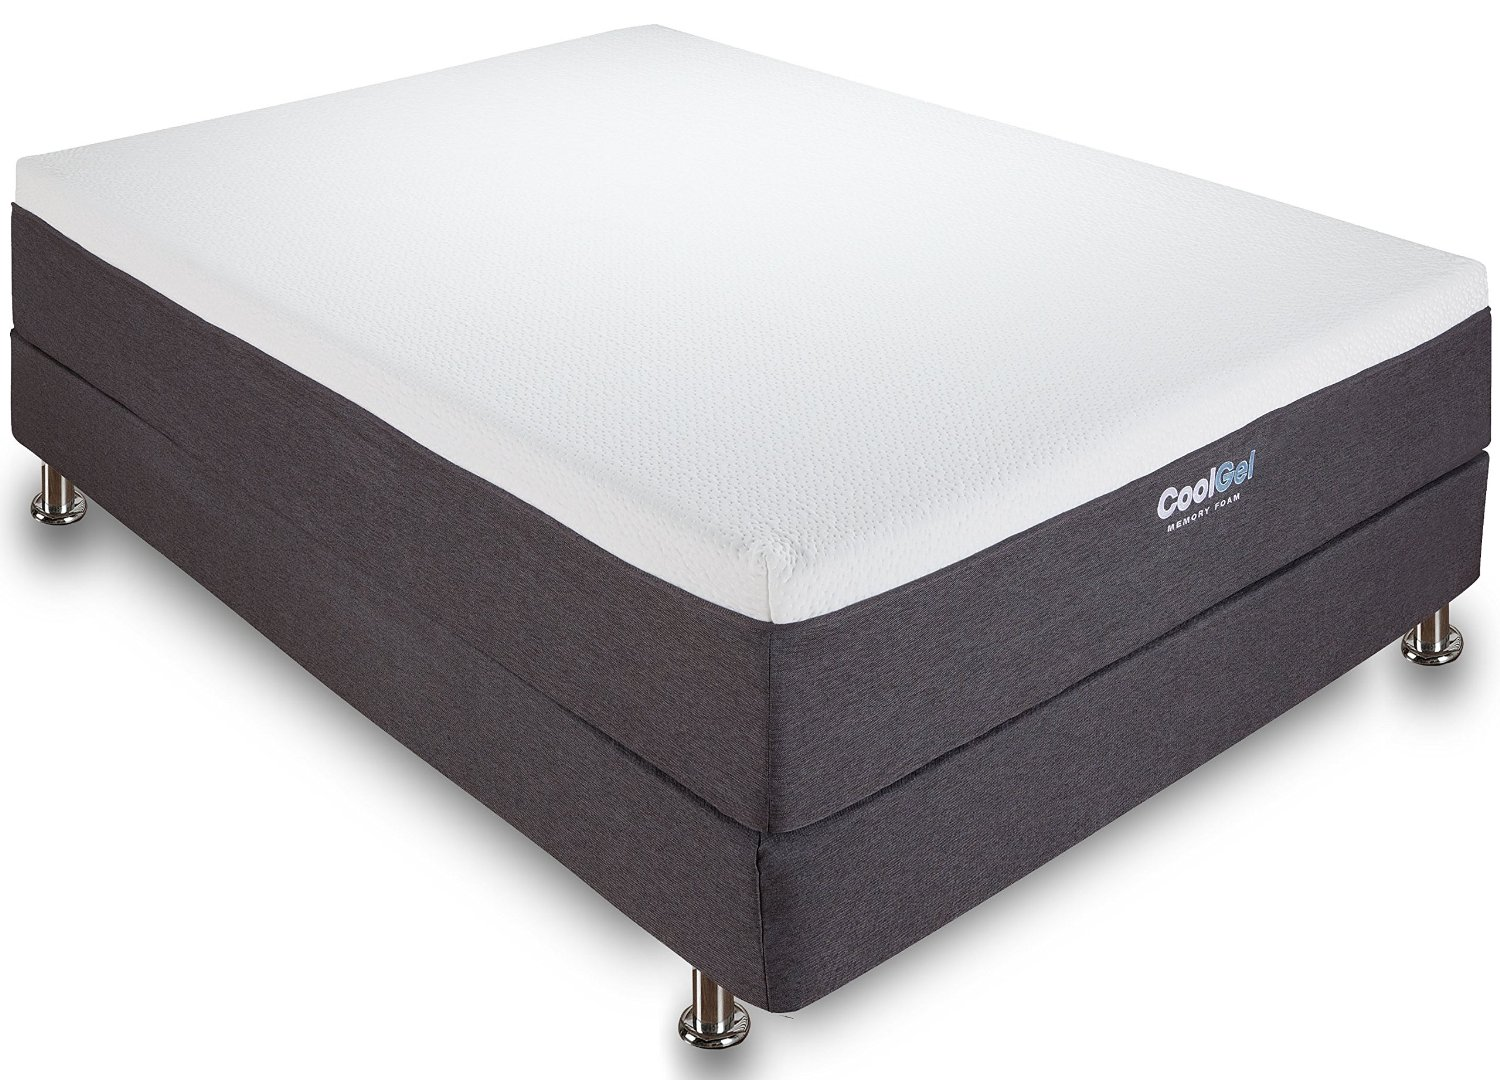 Classic Brands 12 Inch Gel Memory Foam Mattress